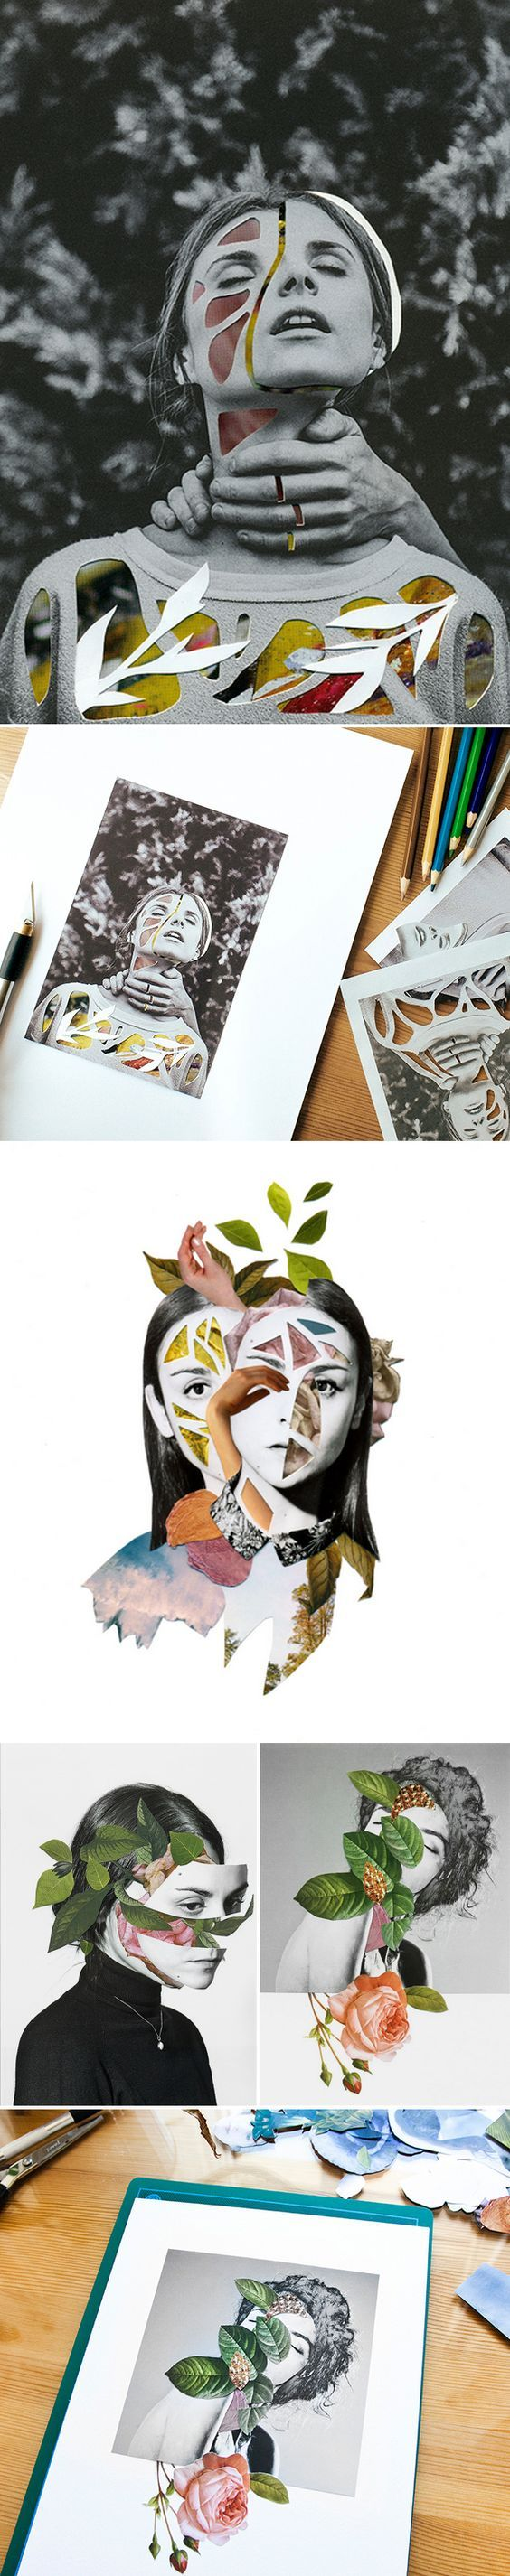 Greyscale main images and cut out shapes to show through colours and textures. Rocio Montoya.: